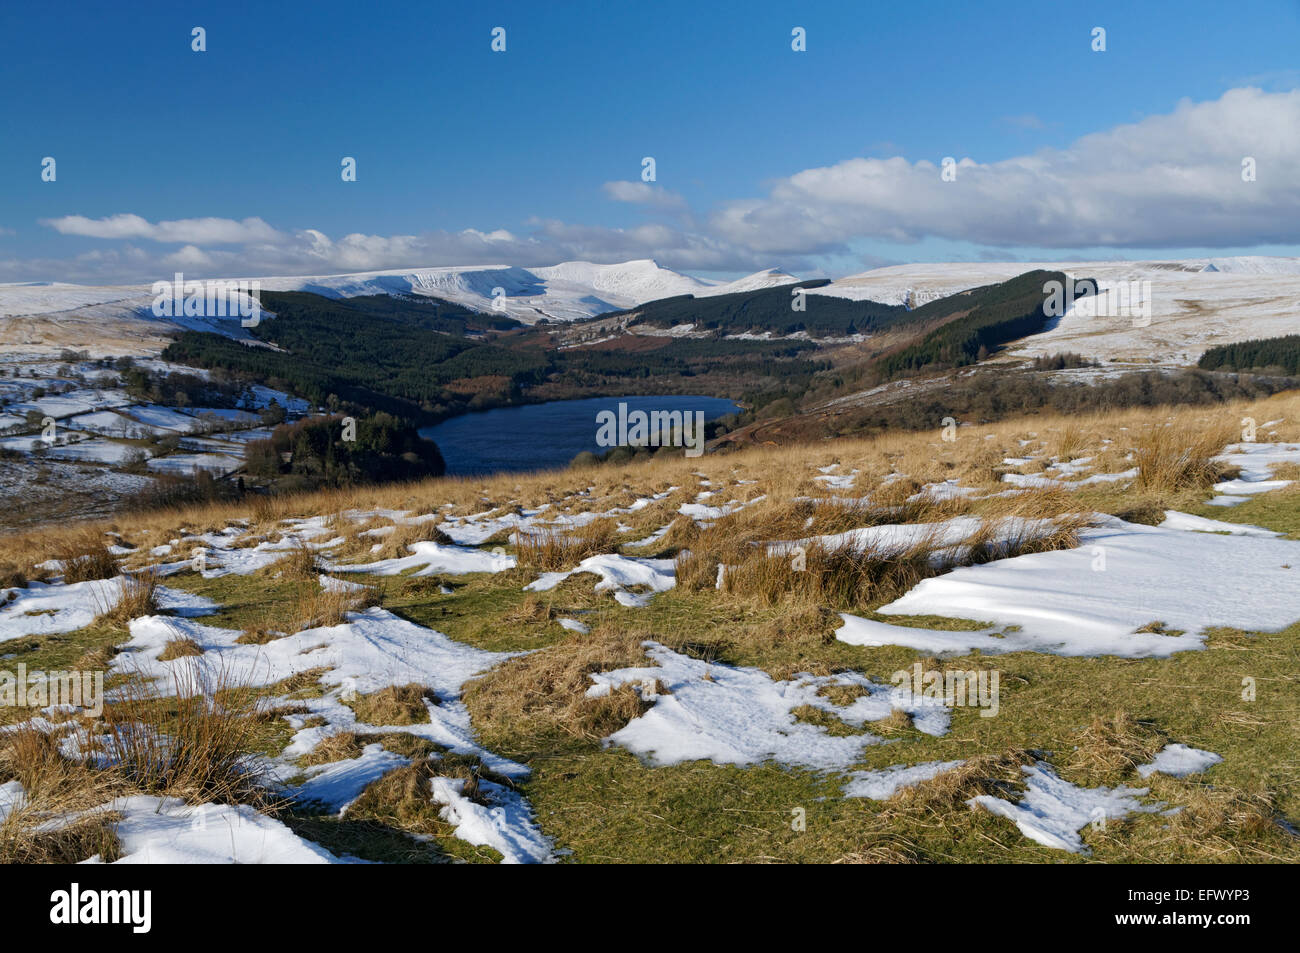 Taf Fechan Reservoirs, Brecon Beacons National Park, Powys, Wales, UK. Stock Photo